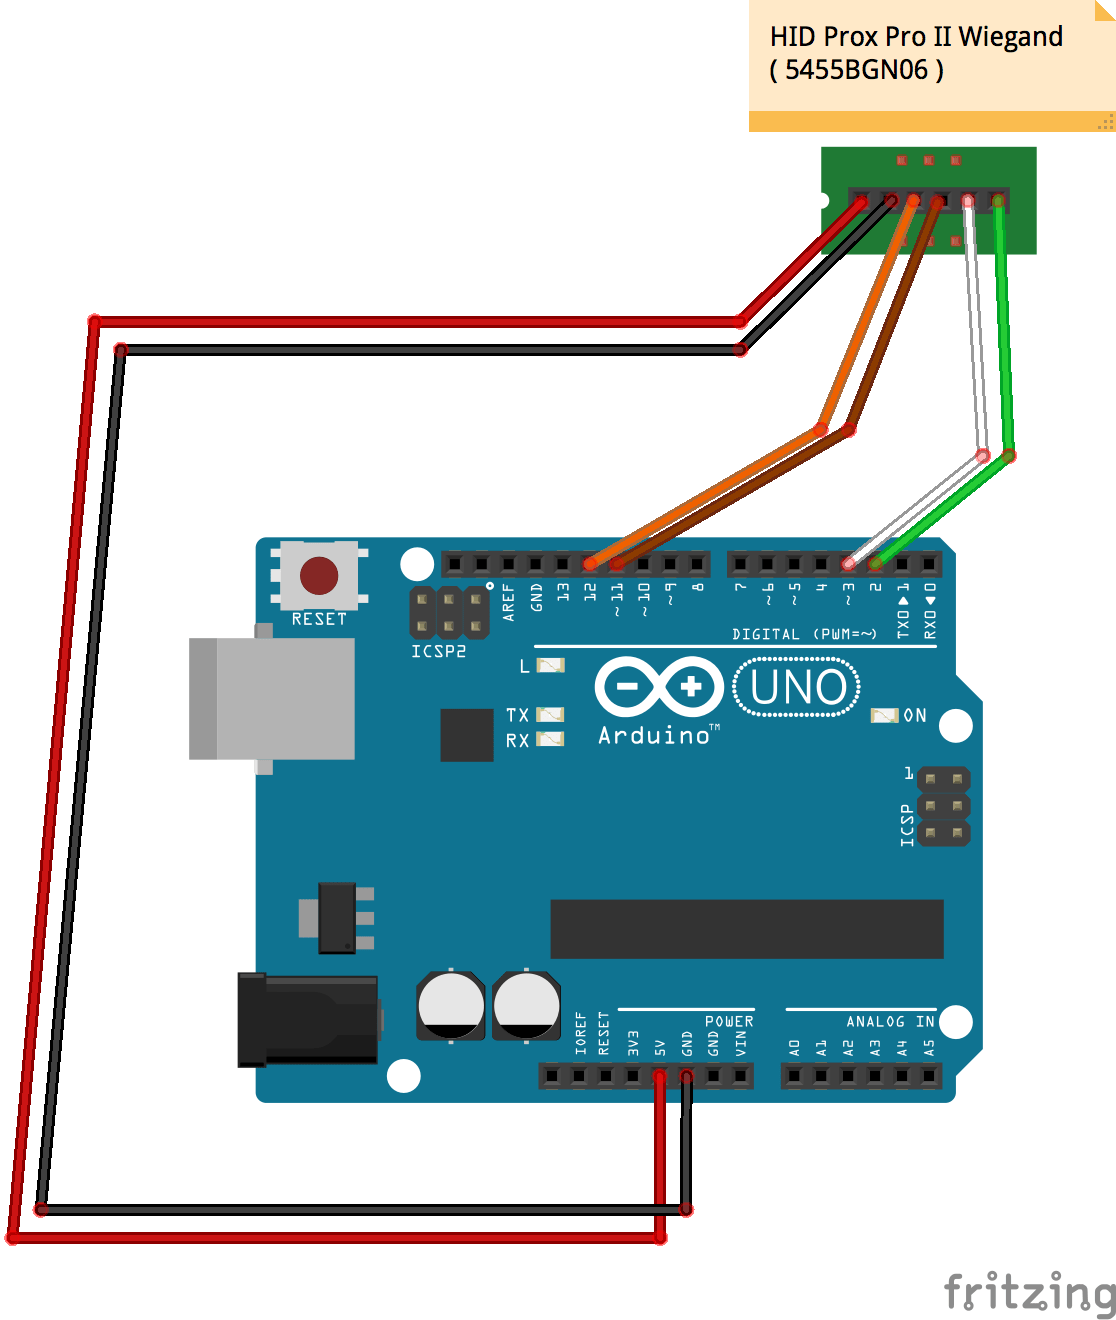 hid miniprox reader wiring diagram harbor breeze fan diagrams prox rfid to arduino hackster io